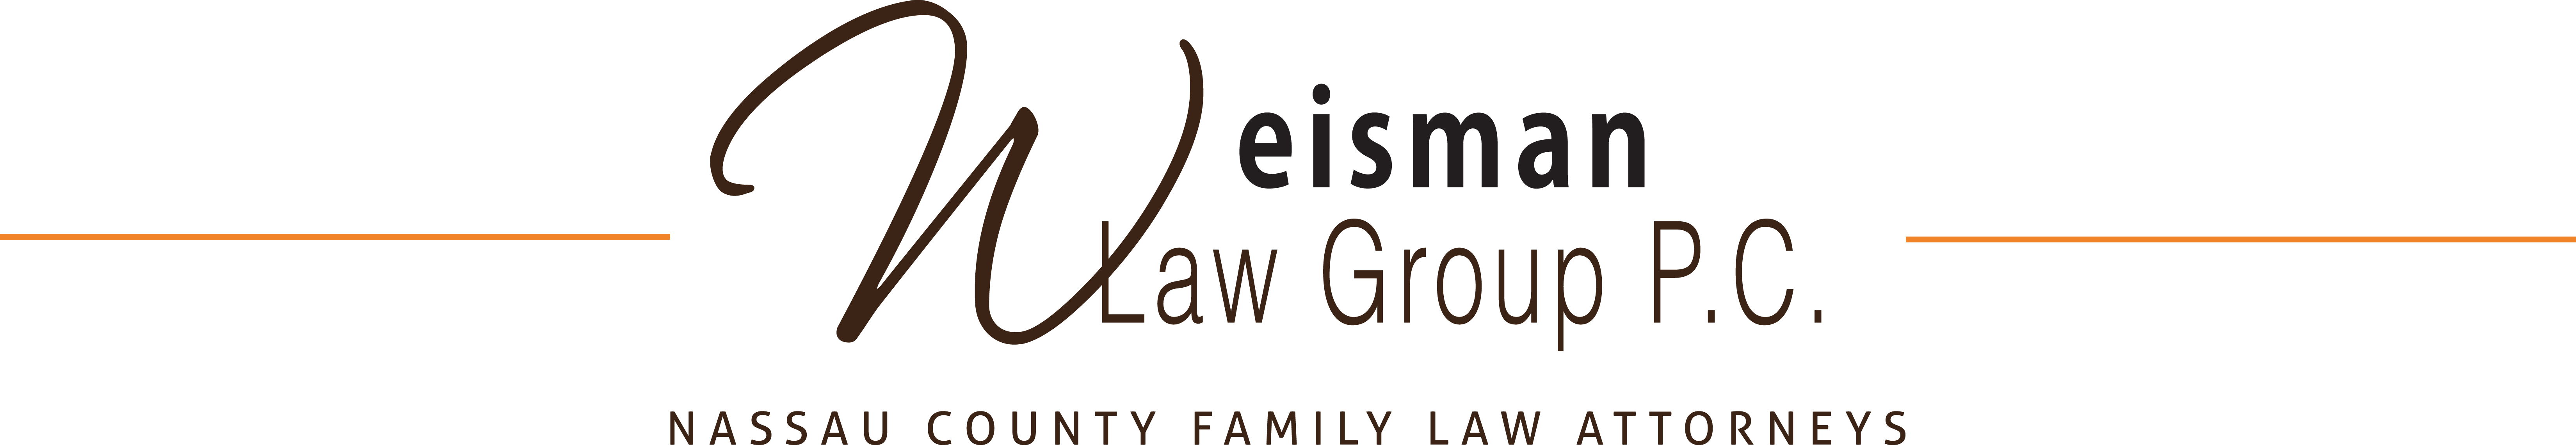 Weisman Law Group - Nassau County Family Law Attorneys